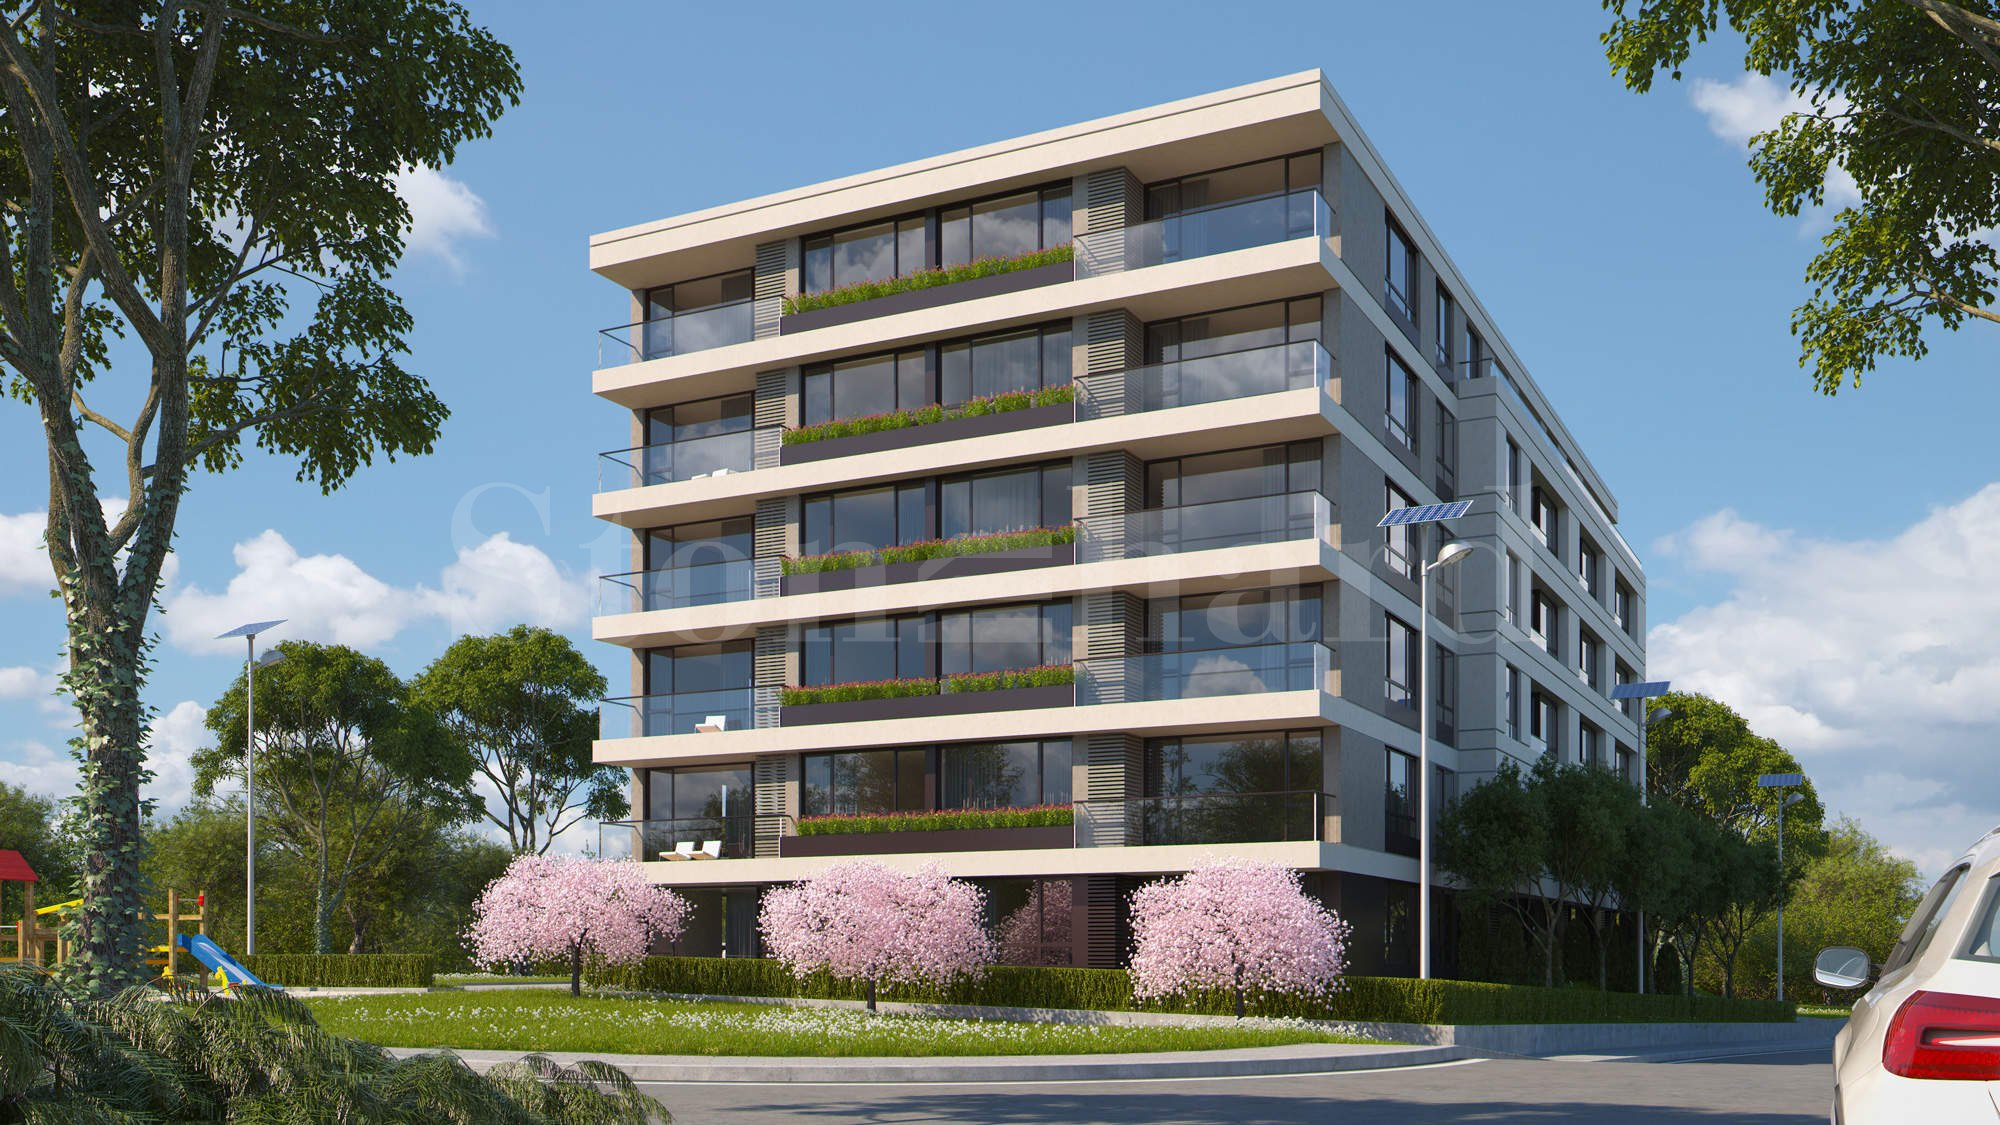 New residential building with apartments and underground garages in Malinova Dolina District2 - Stonehard